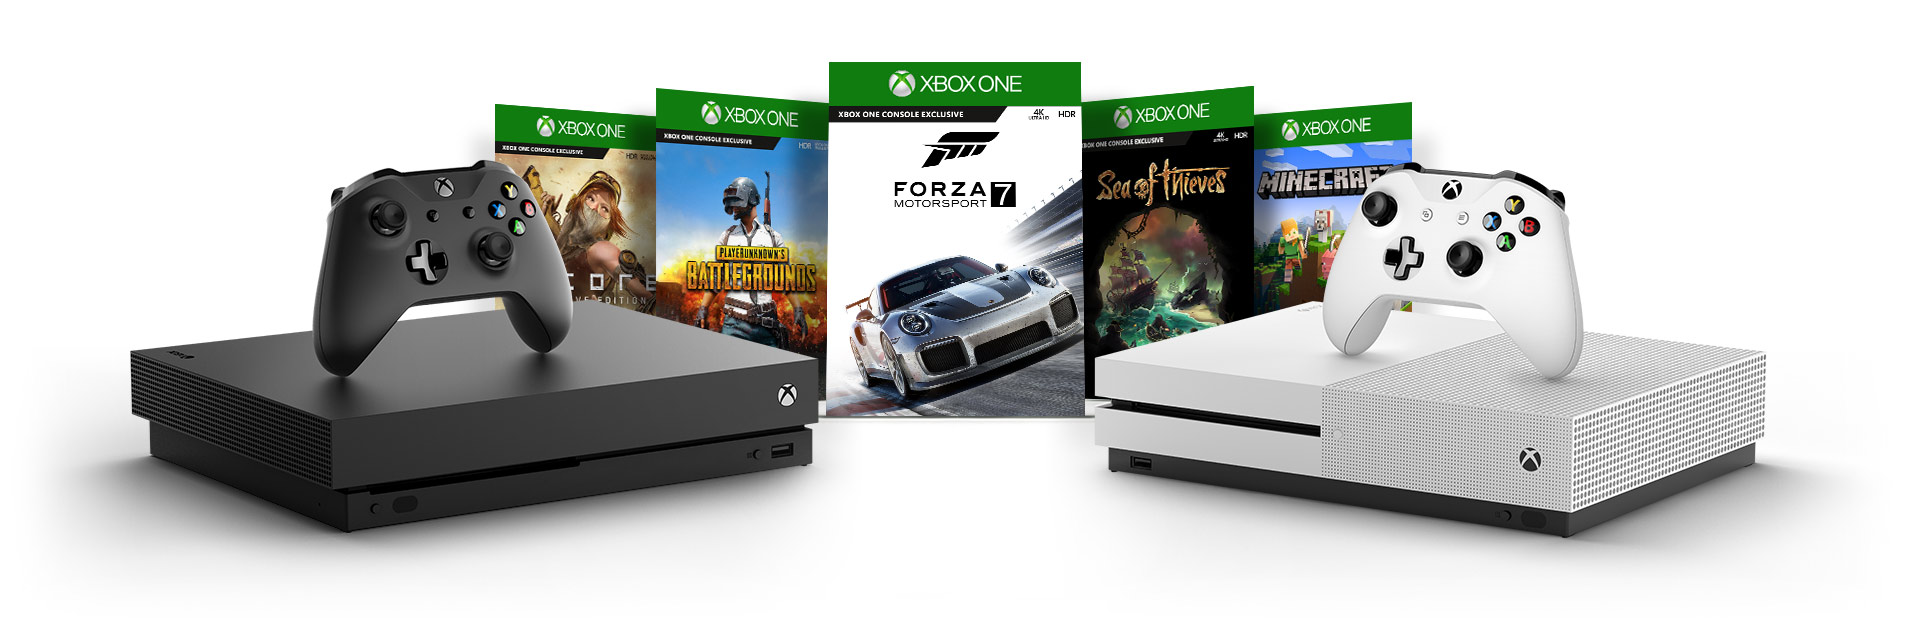 Pakkauksien kansia peleistä State of Decay 2, Player Unknown's Battlegrounds, Forza 7, Sea of Thieves ja Cuphead Xbox One X- ja Xbox One S -konsolien taustalla